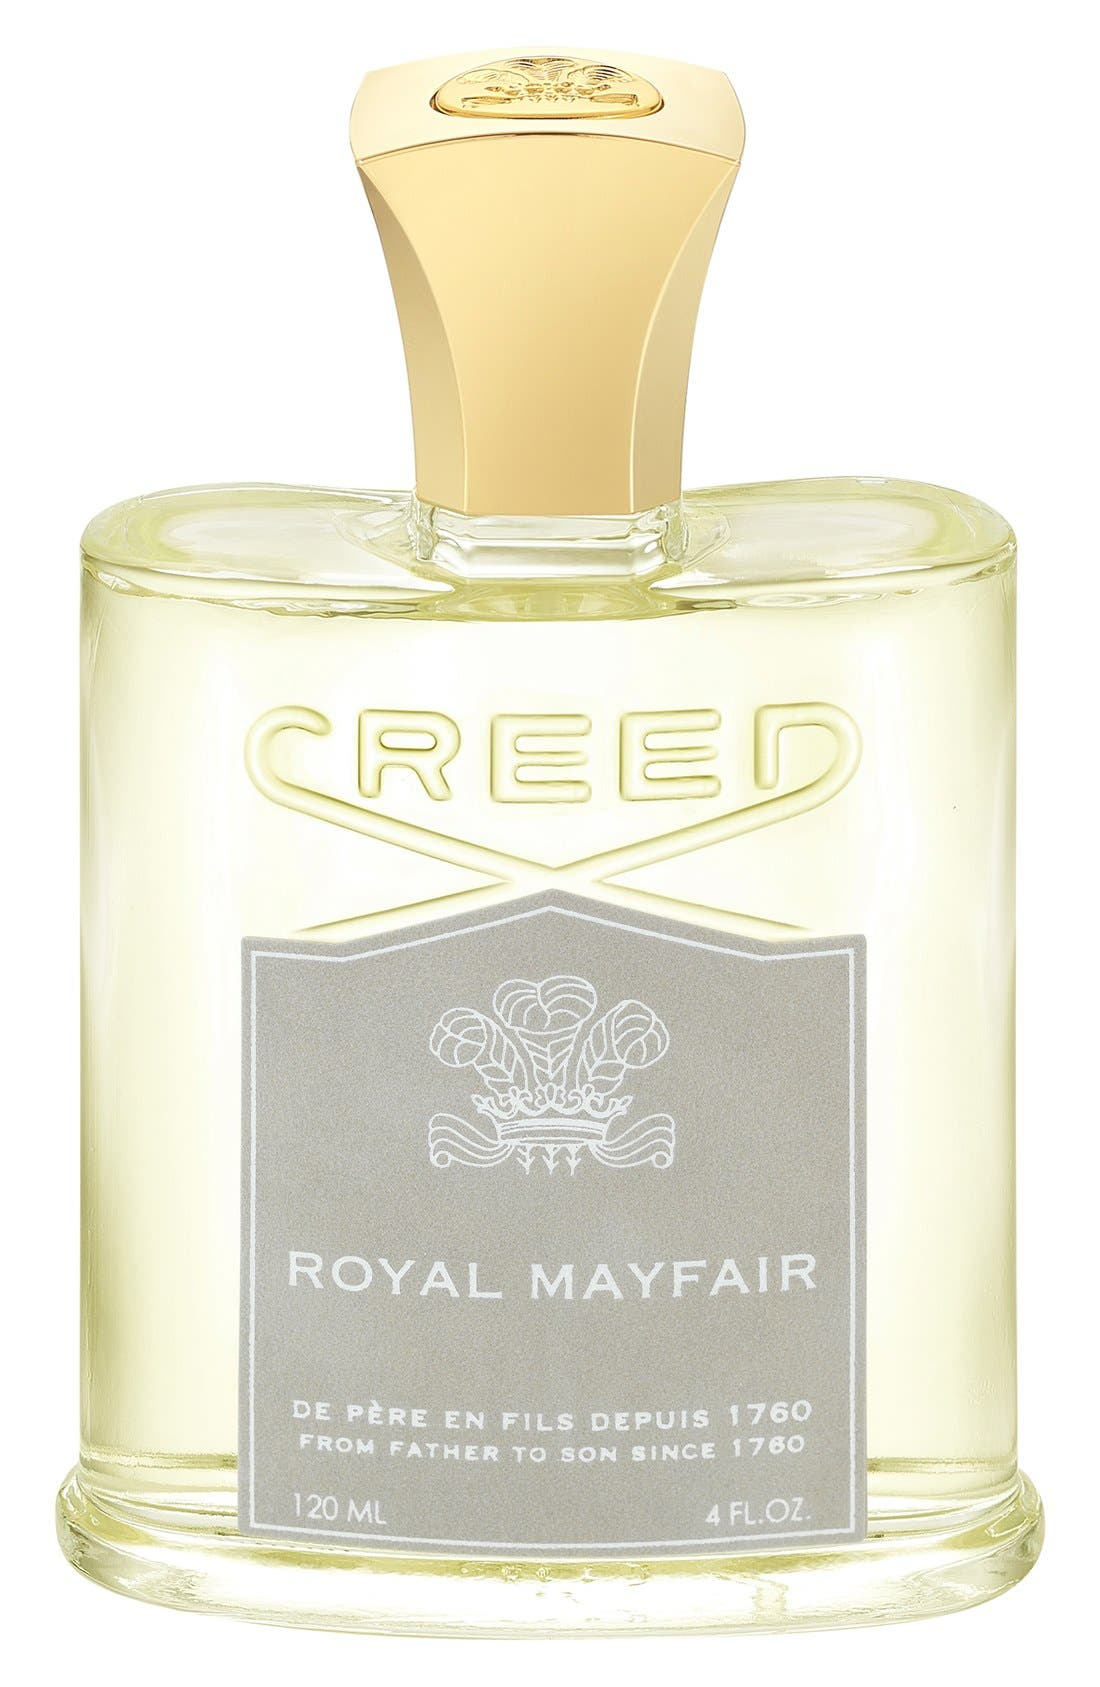 Creed 'Royal Mayfair' Fragrance